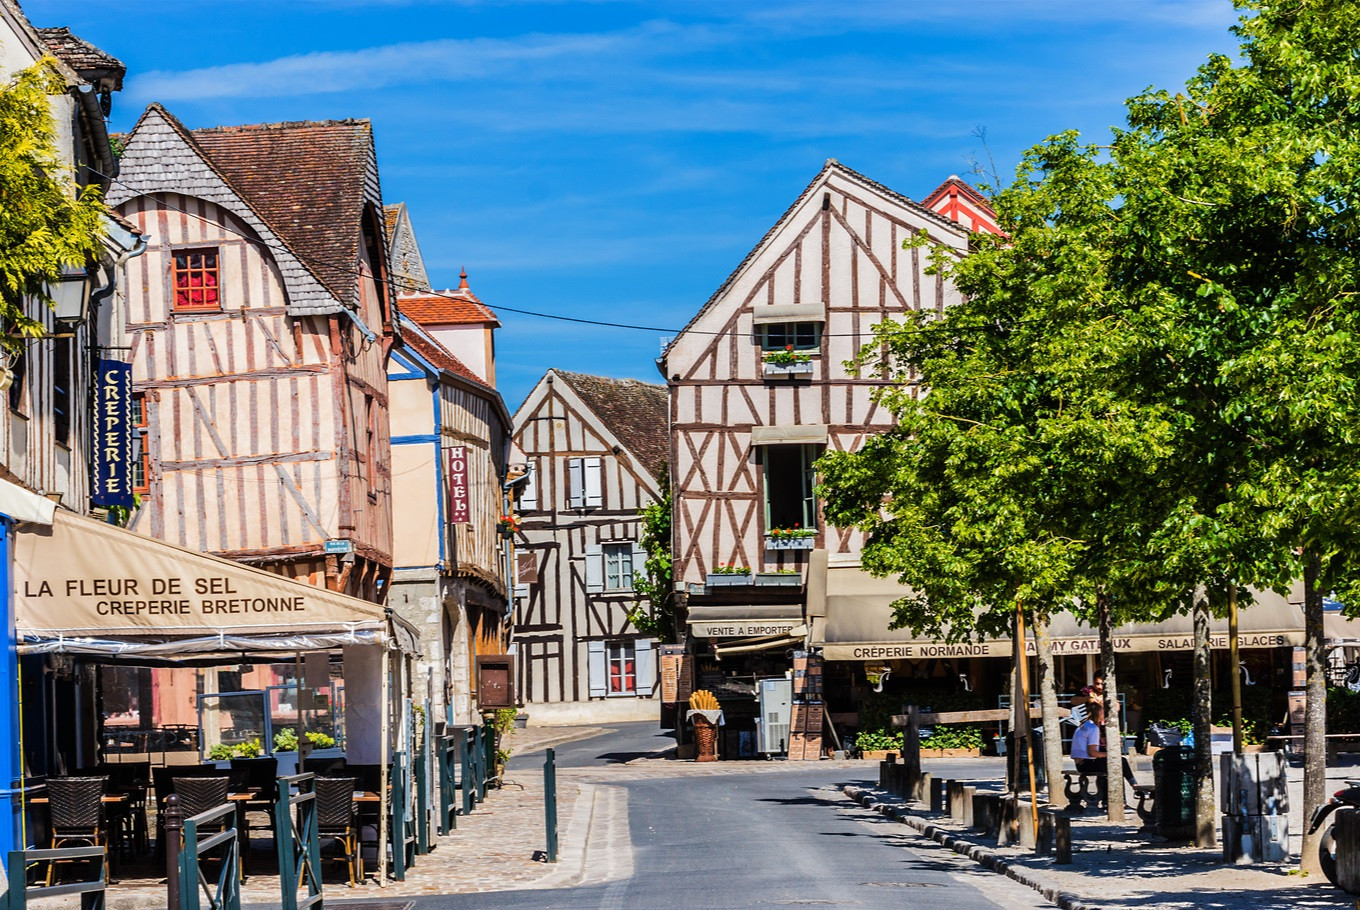 Discover the medieval heritage of France in the town of Provins